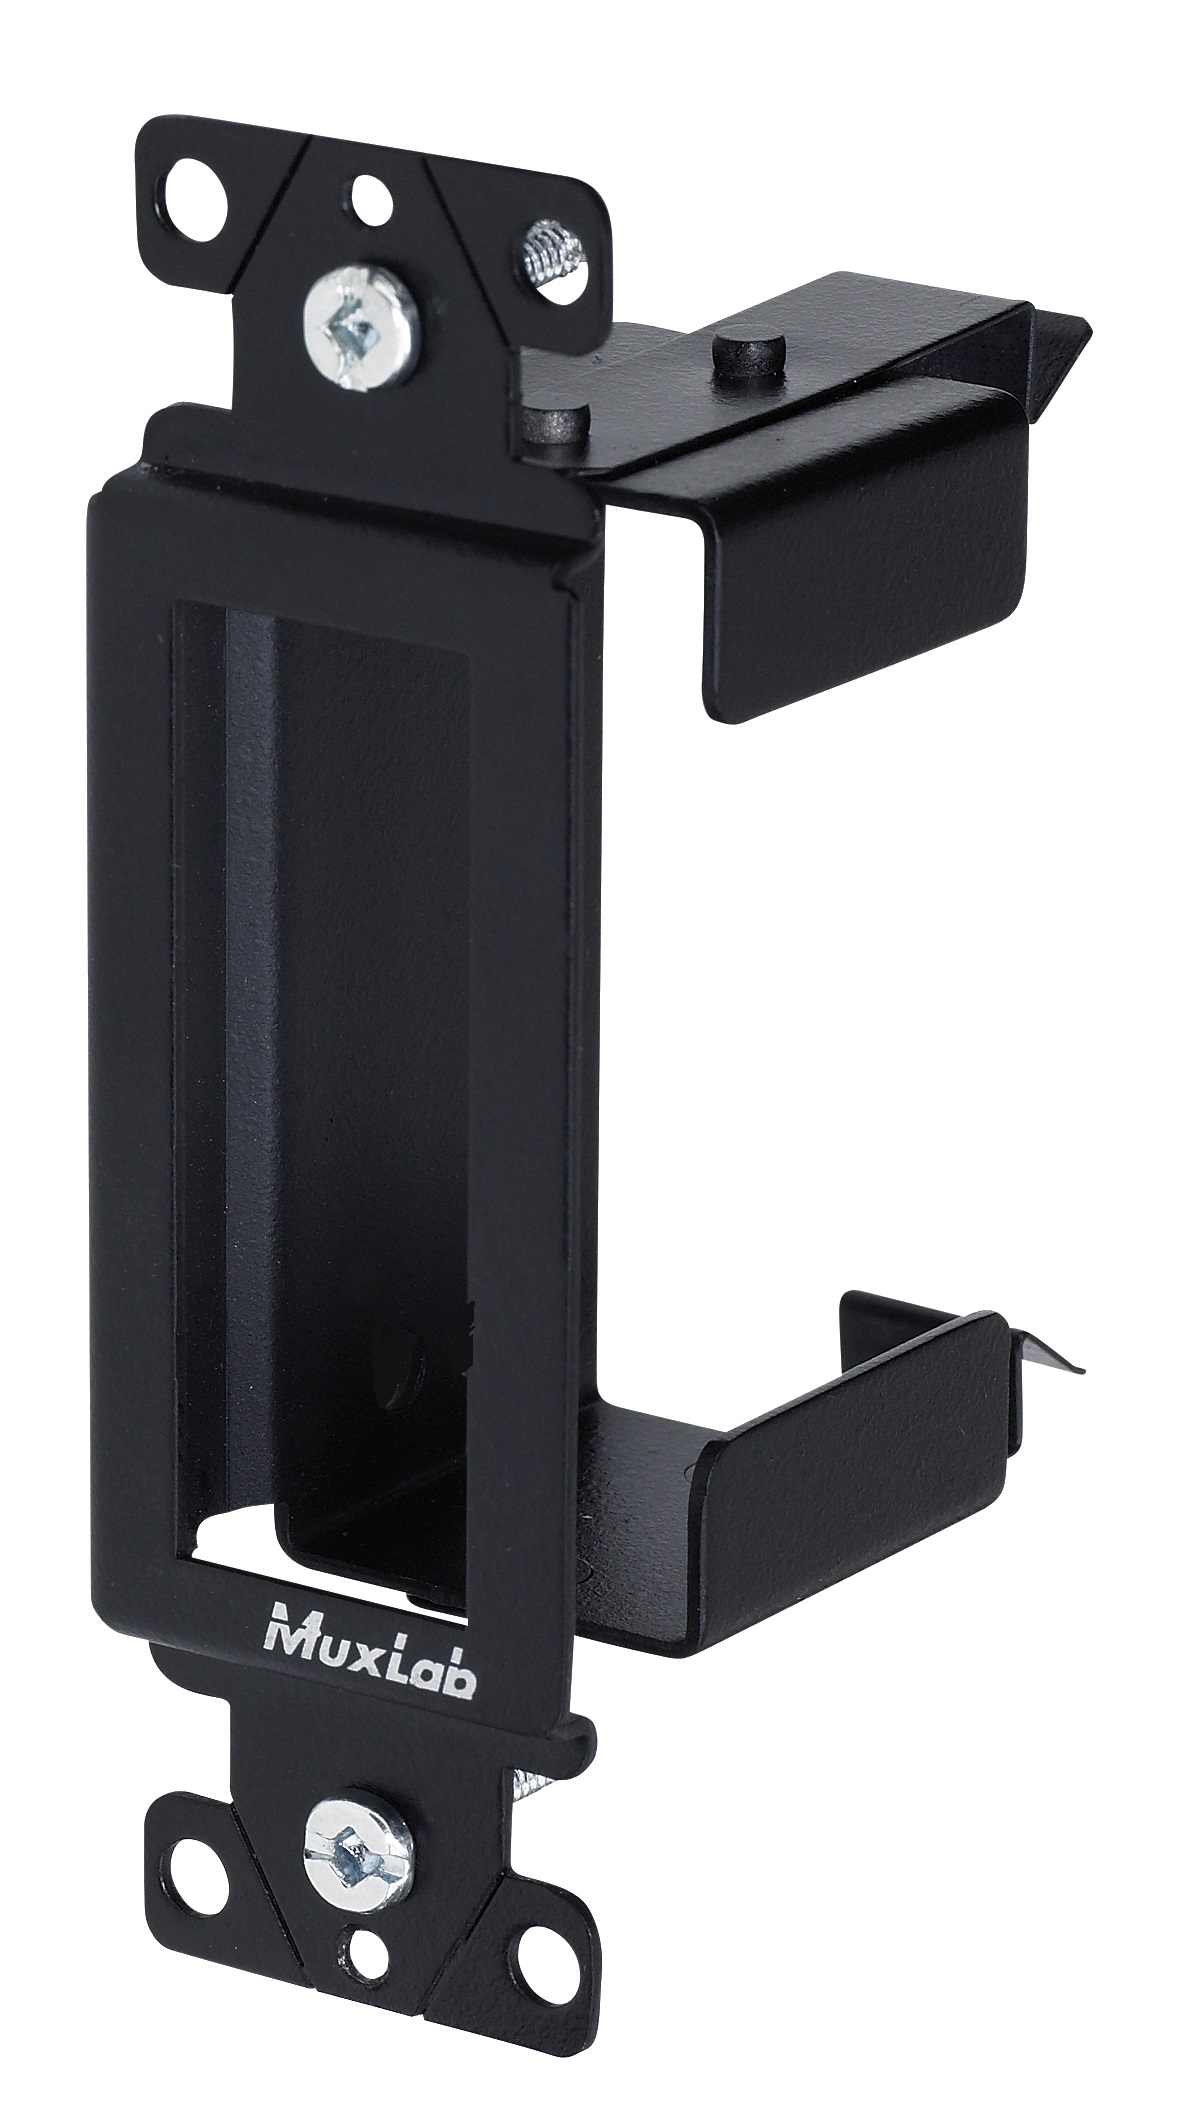 MuxLabs Wall Mount Plate for MuxLab Baluns